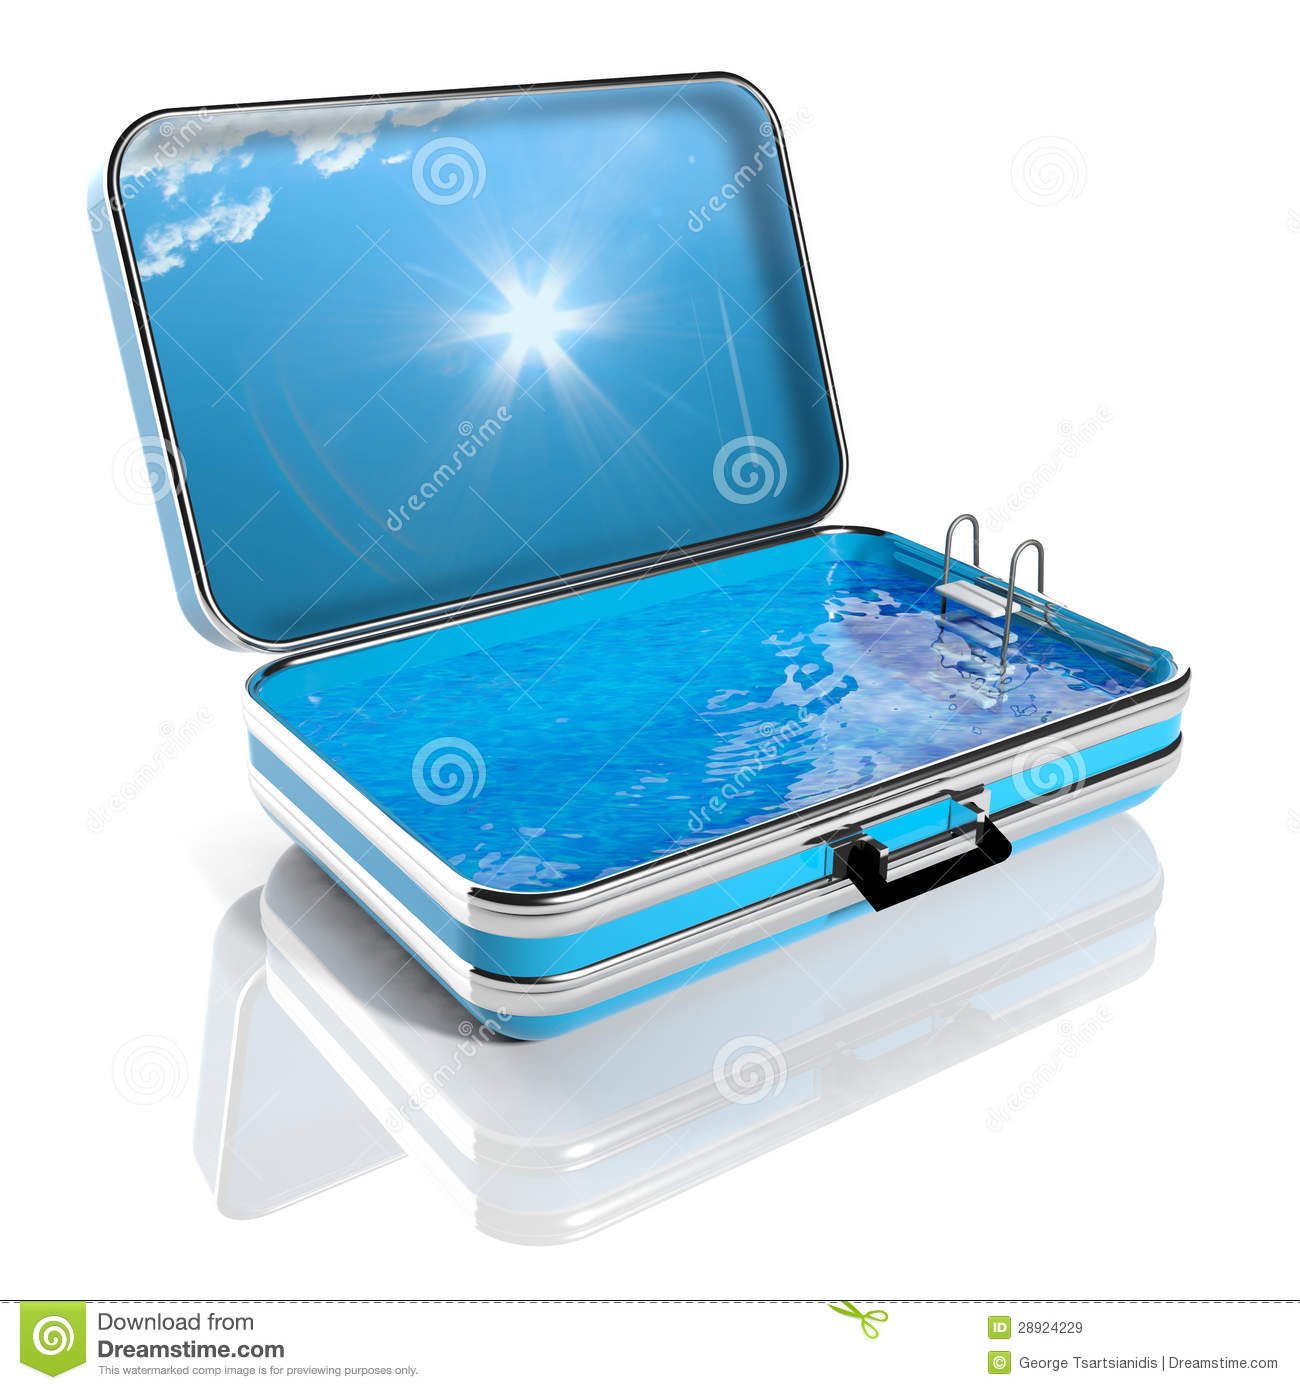 Swimming Pool Travel : Swimming pool in a travel suitcase royalty free stock